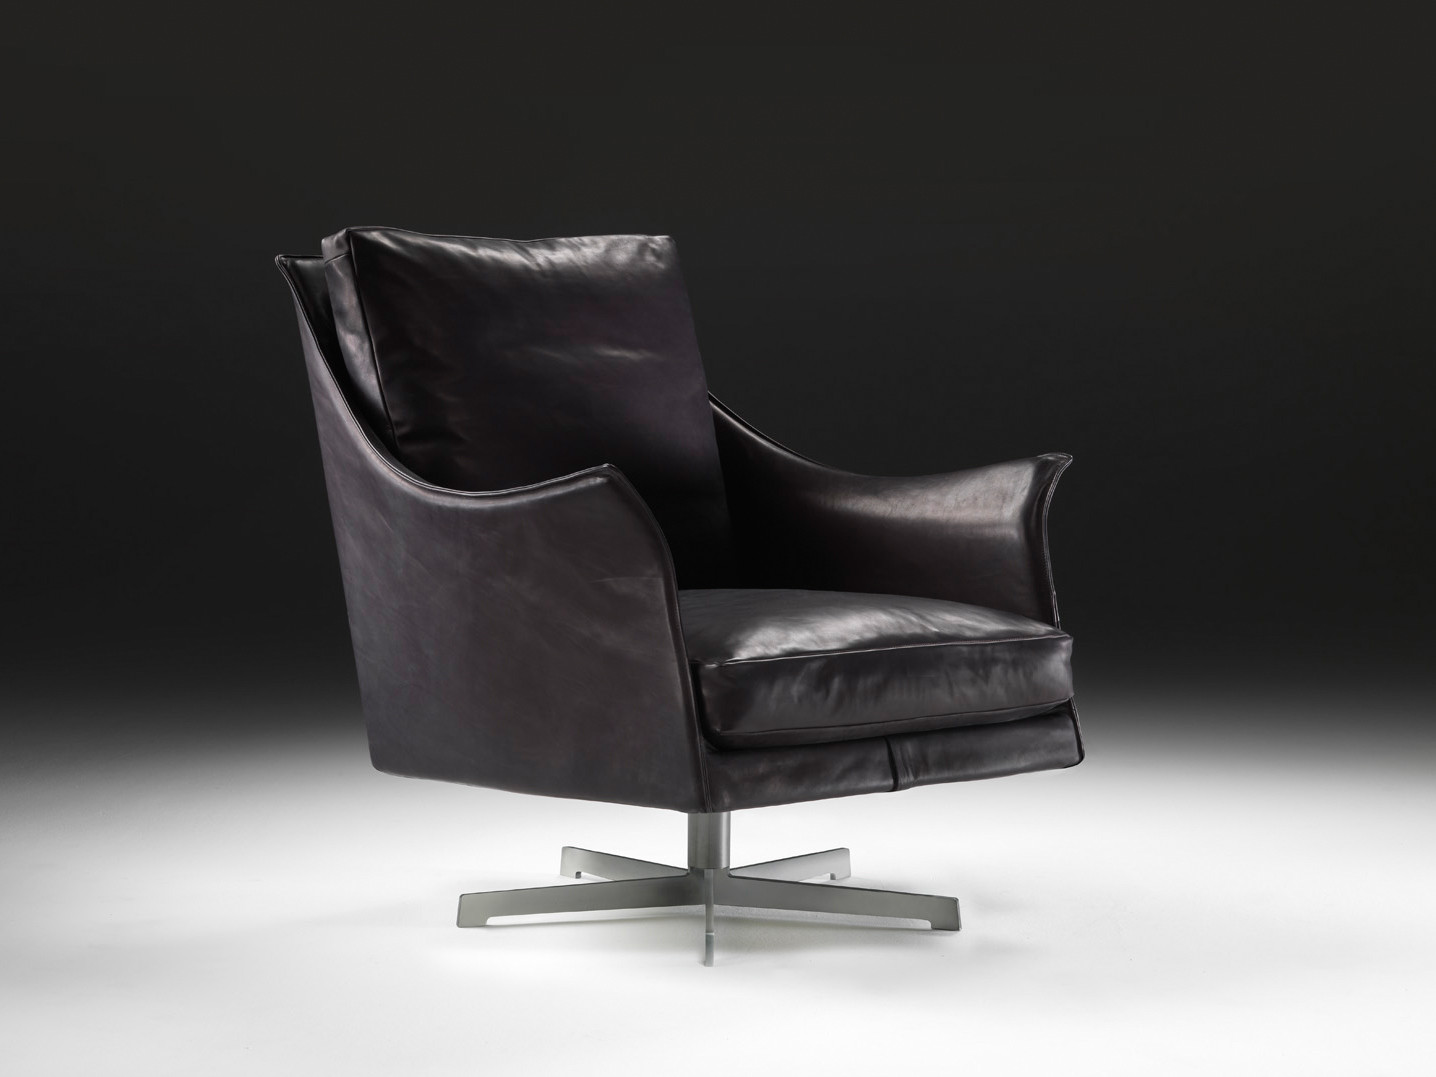 flexform boss armchair buy from campbell watson uk. Black Bedroom Furniture Sets. Home Design Ideas